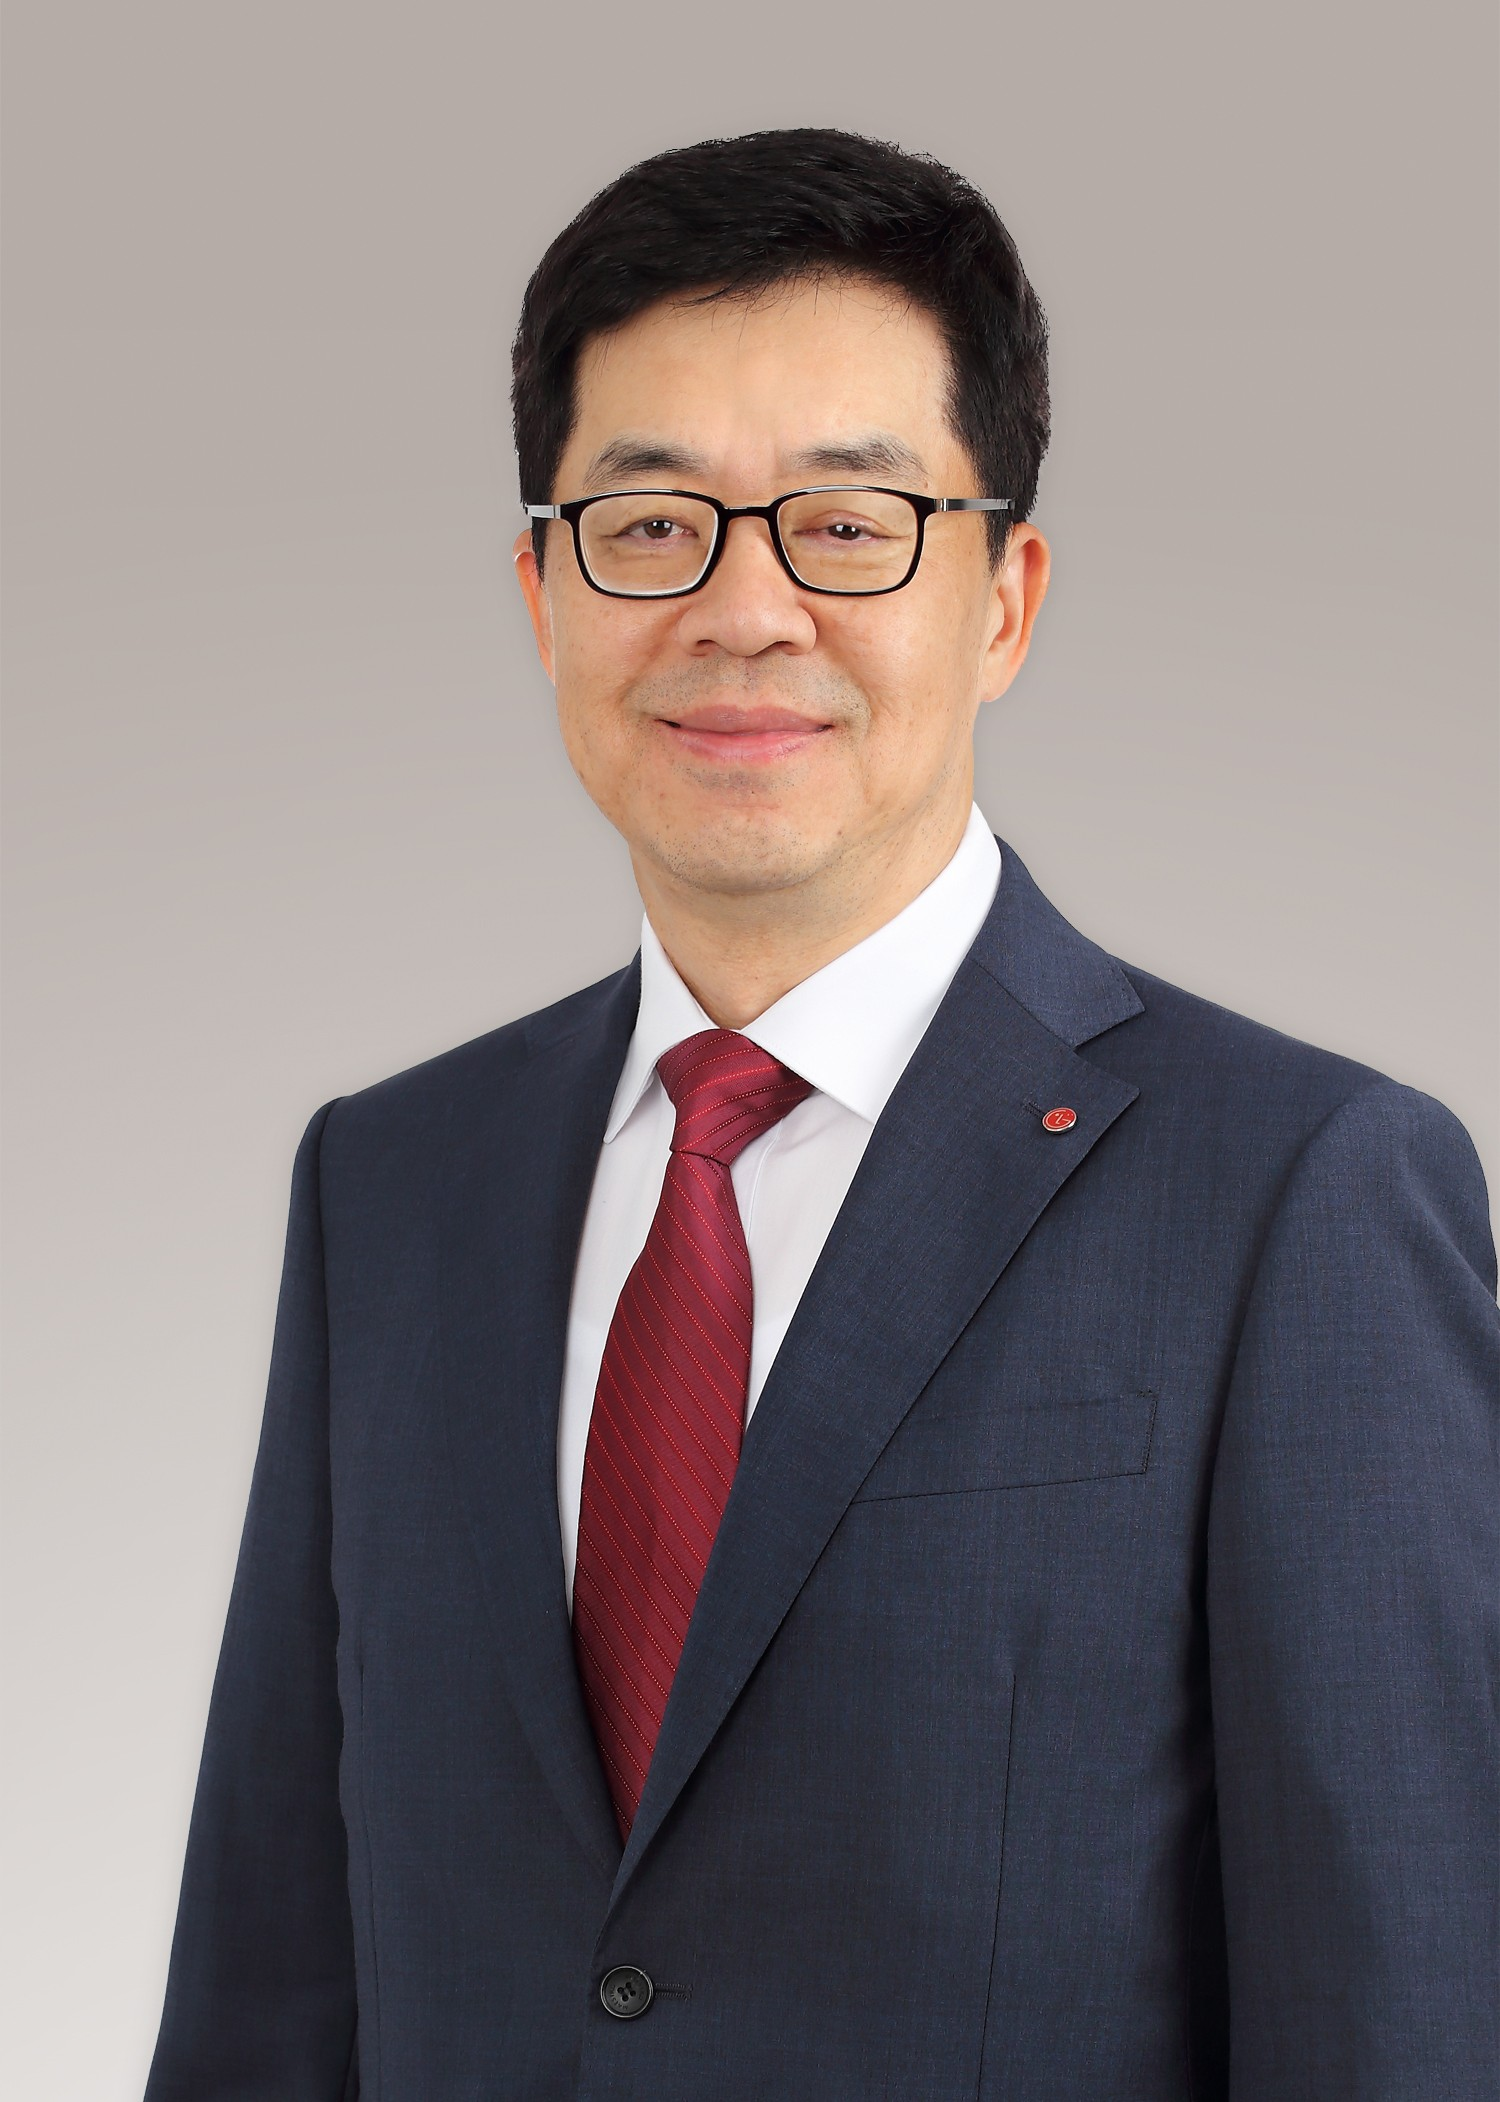 A head shot of president & chief technology officer of LG Electronics, Dr. I.P. Park.